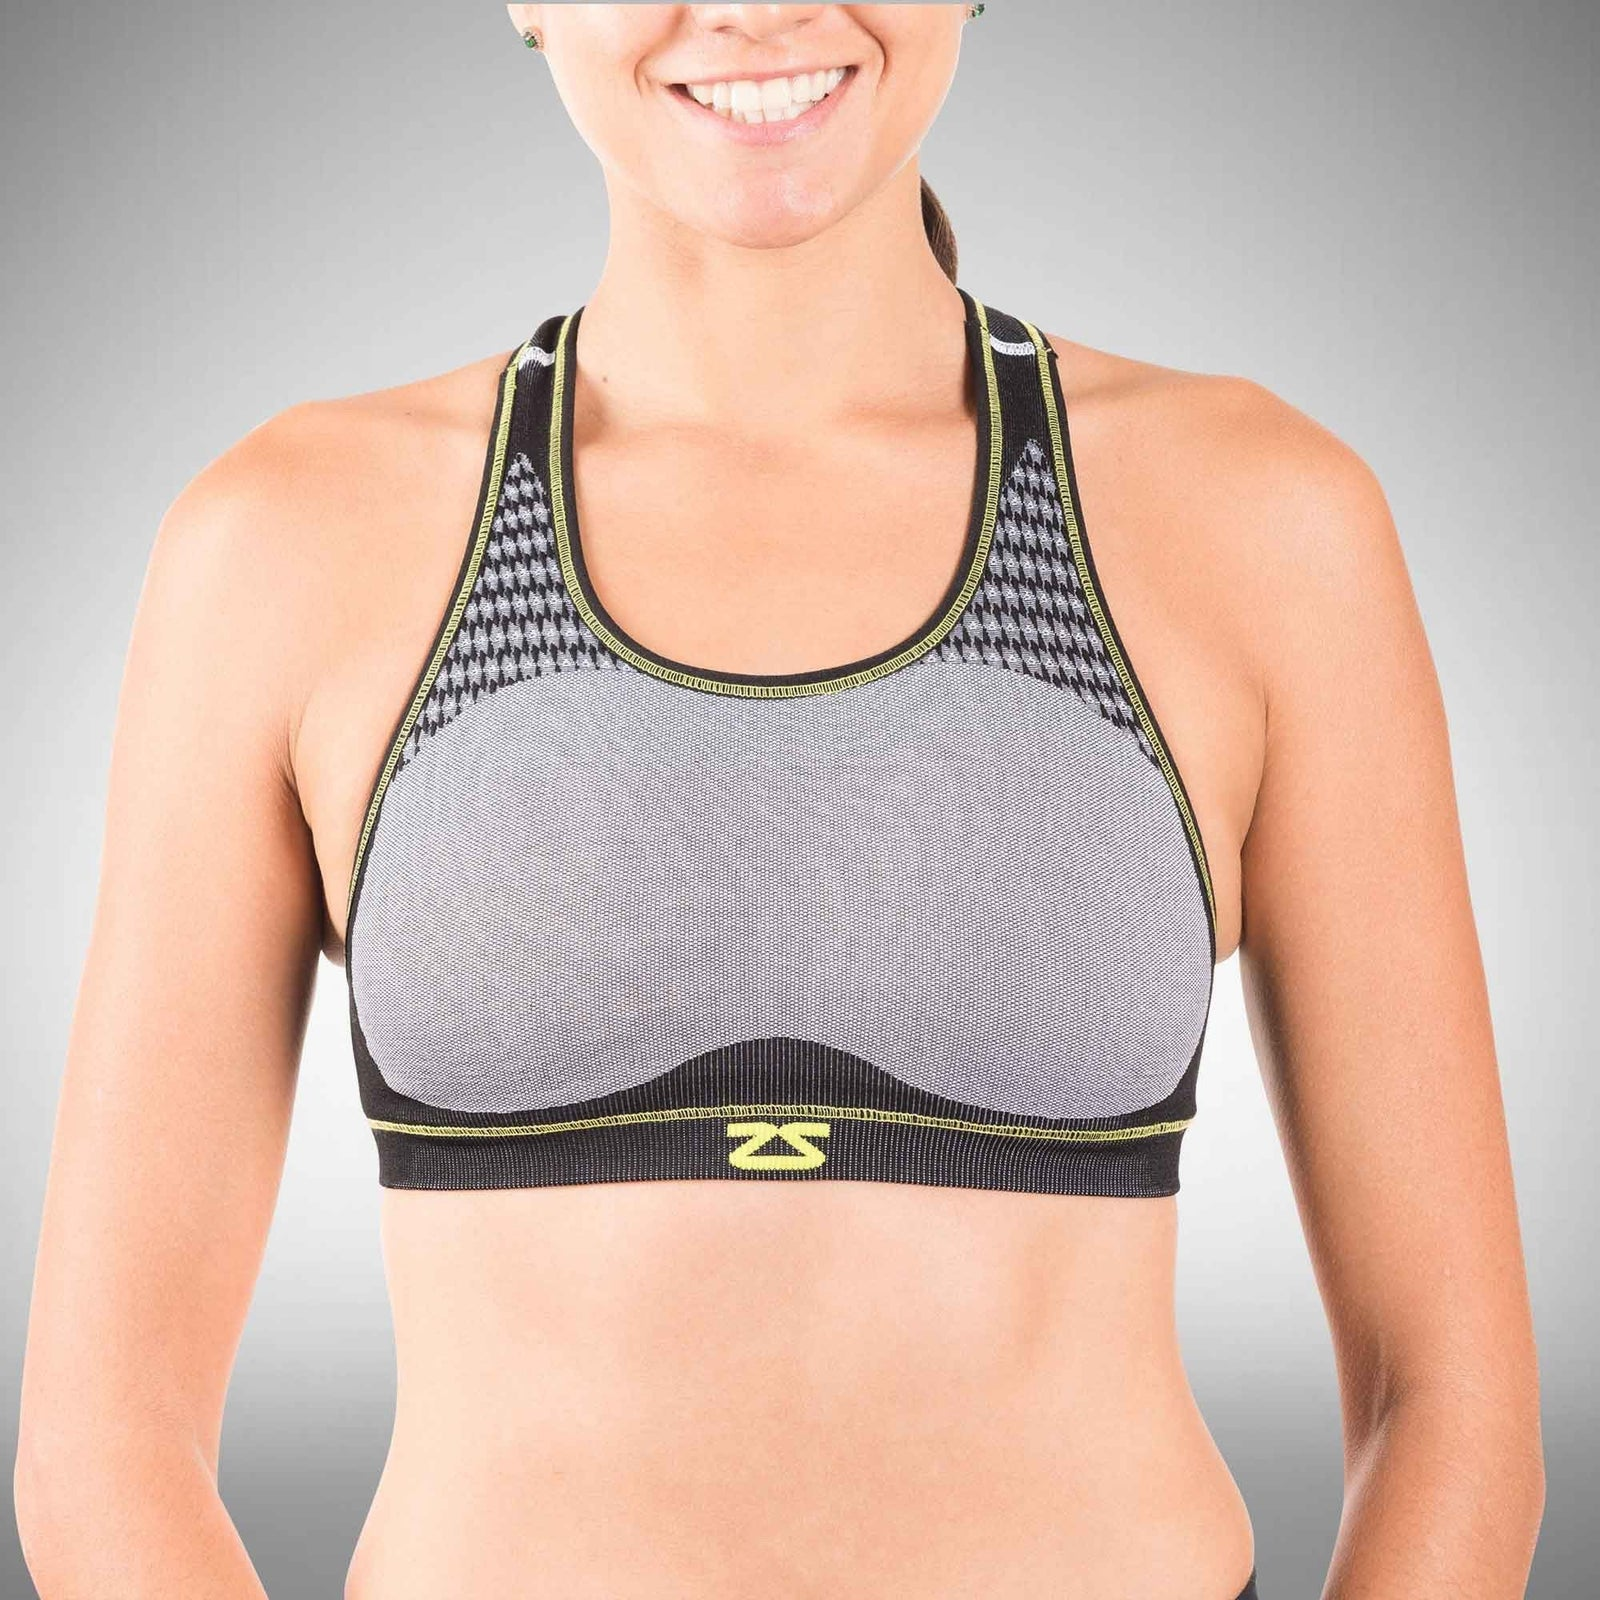 be4e6d40c7f Women s Running Underwear and Sports Bras